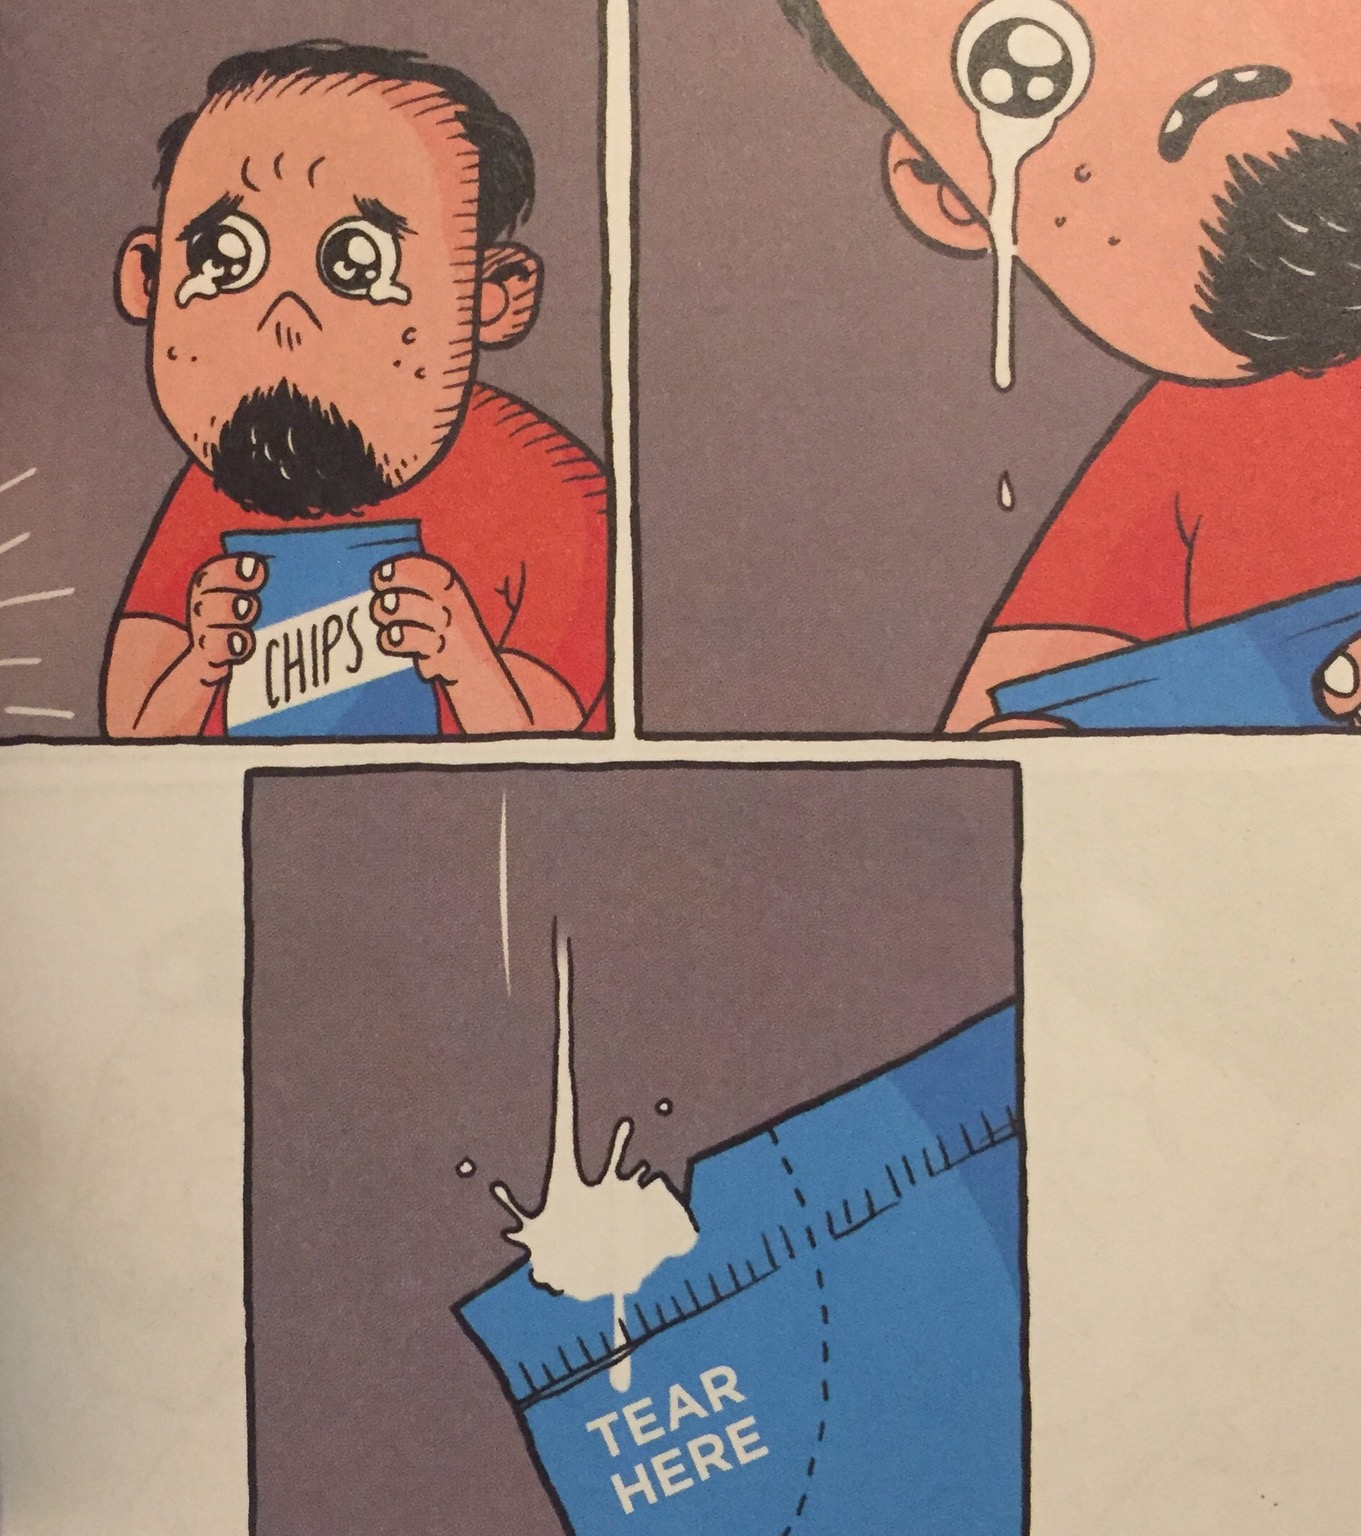 How to open things